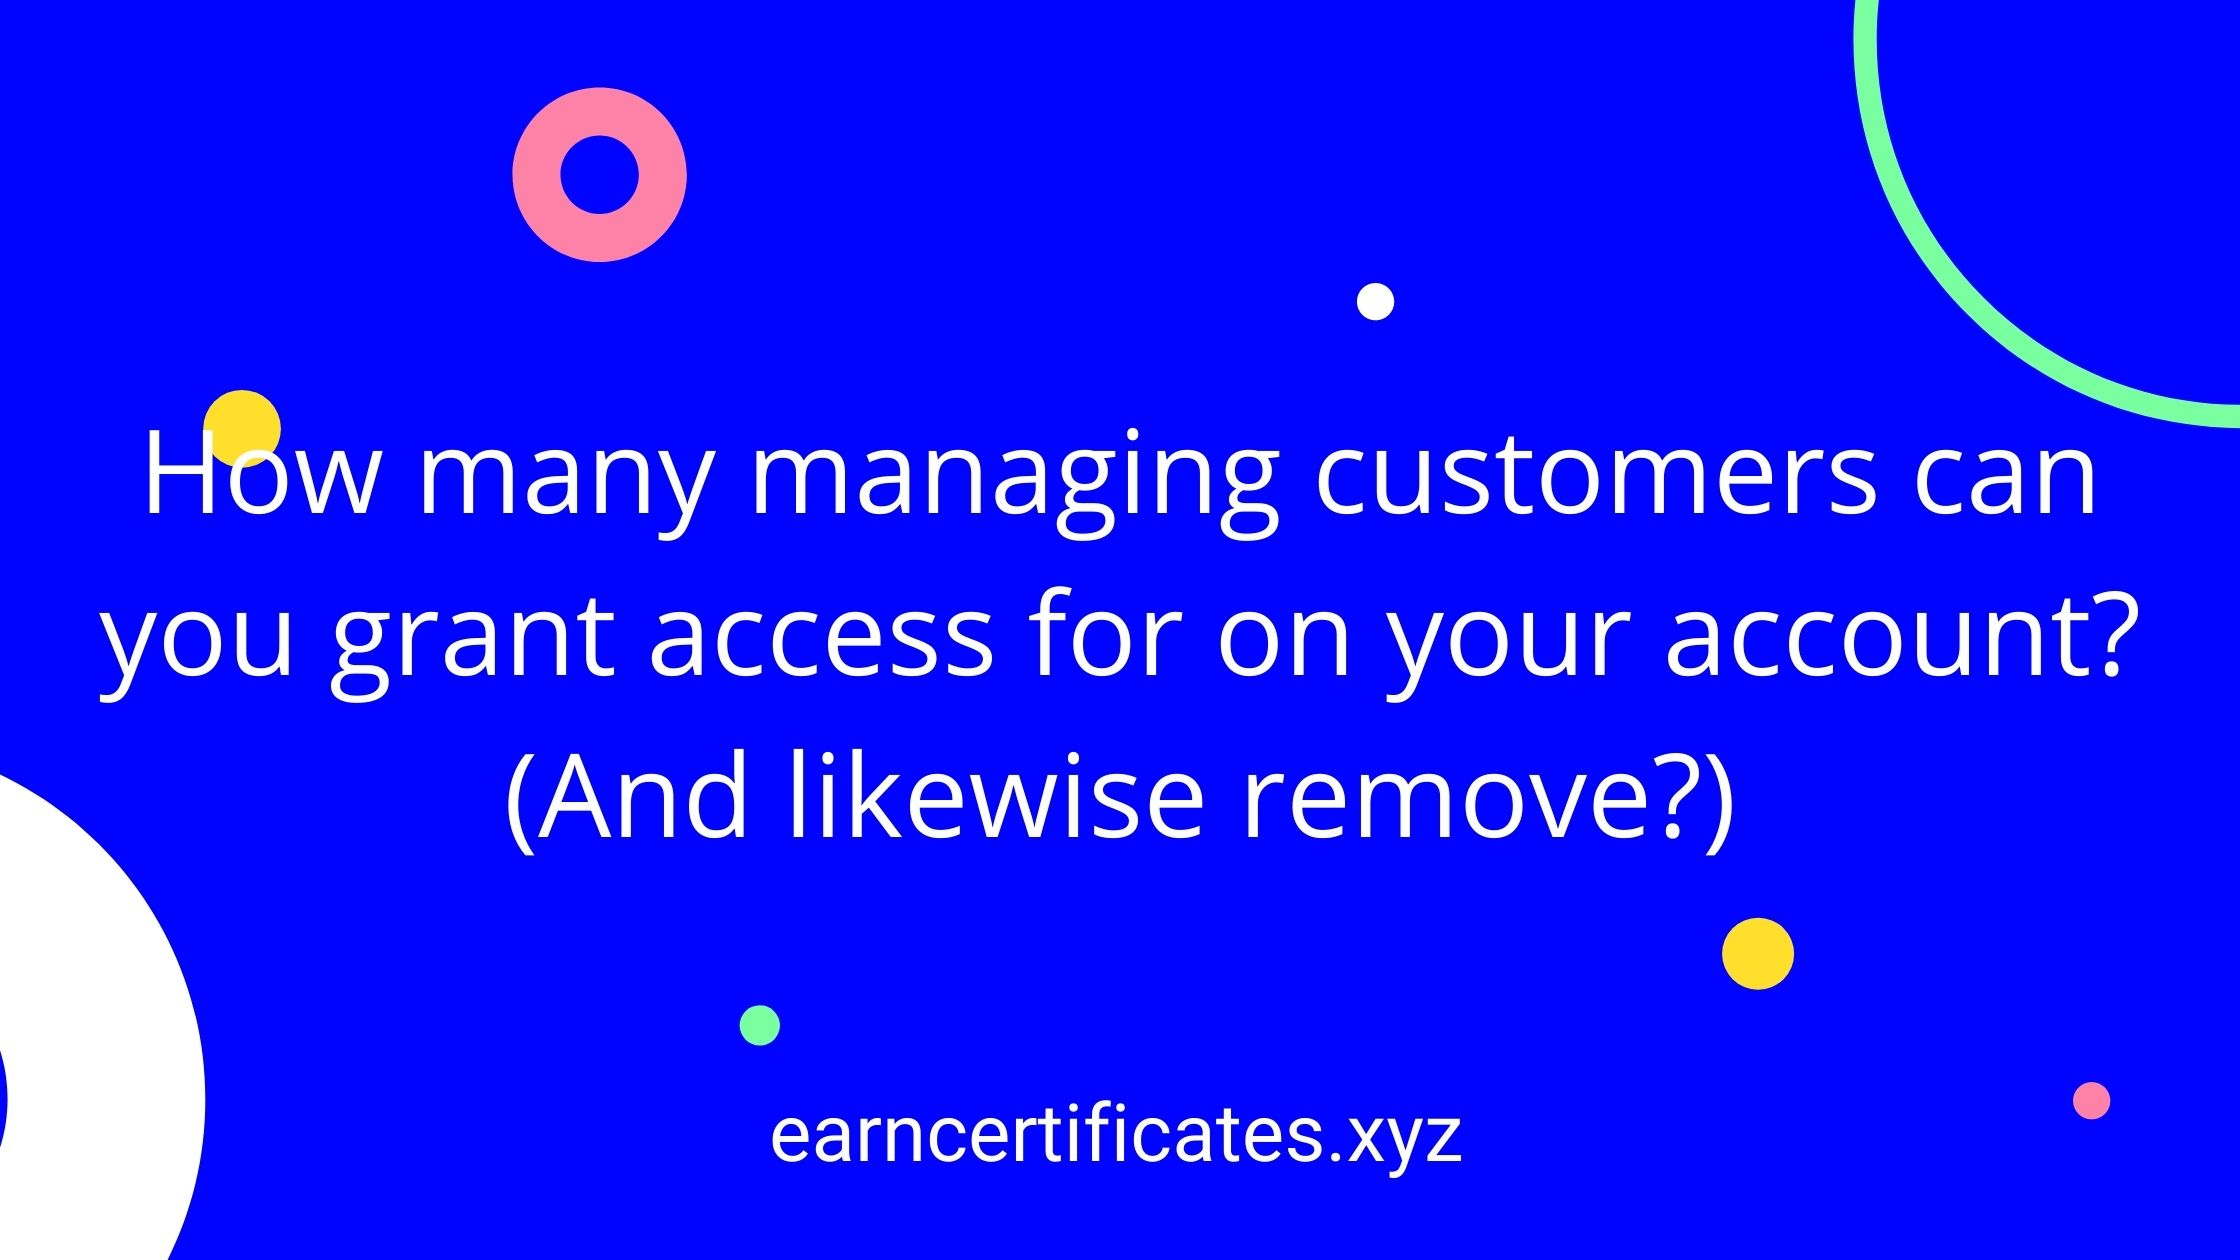 How many managing customers can you grant access for on your account? (And likewise remove?)